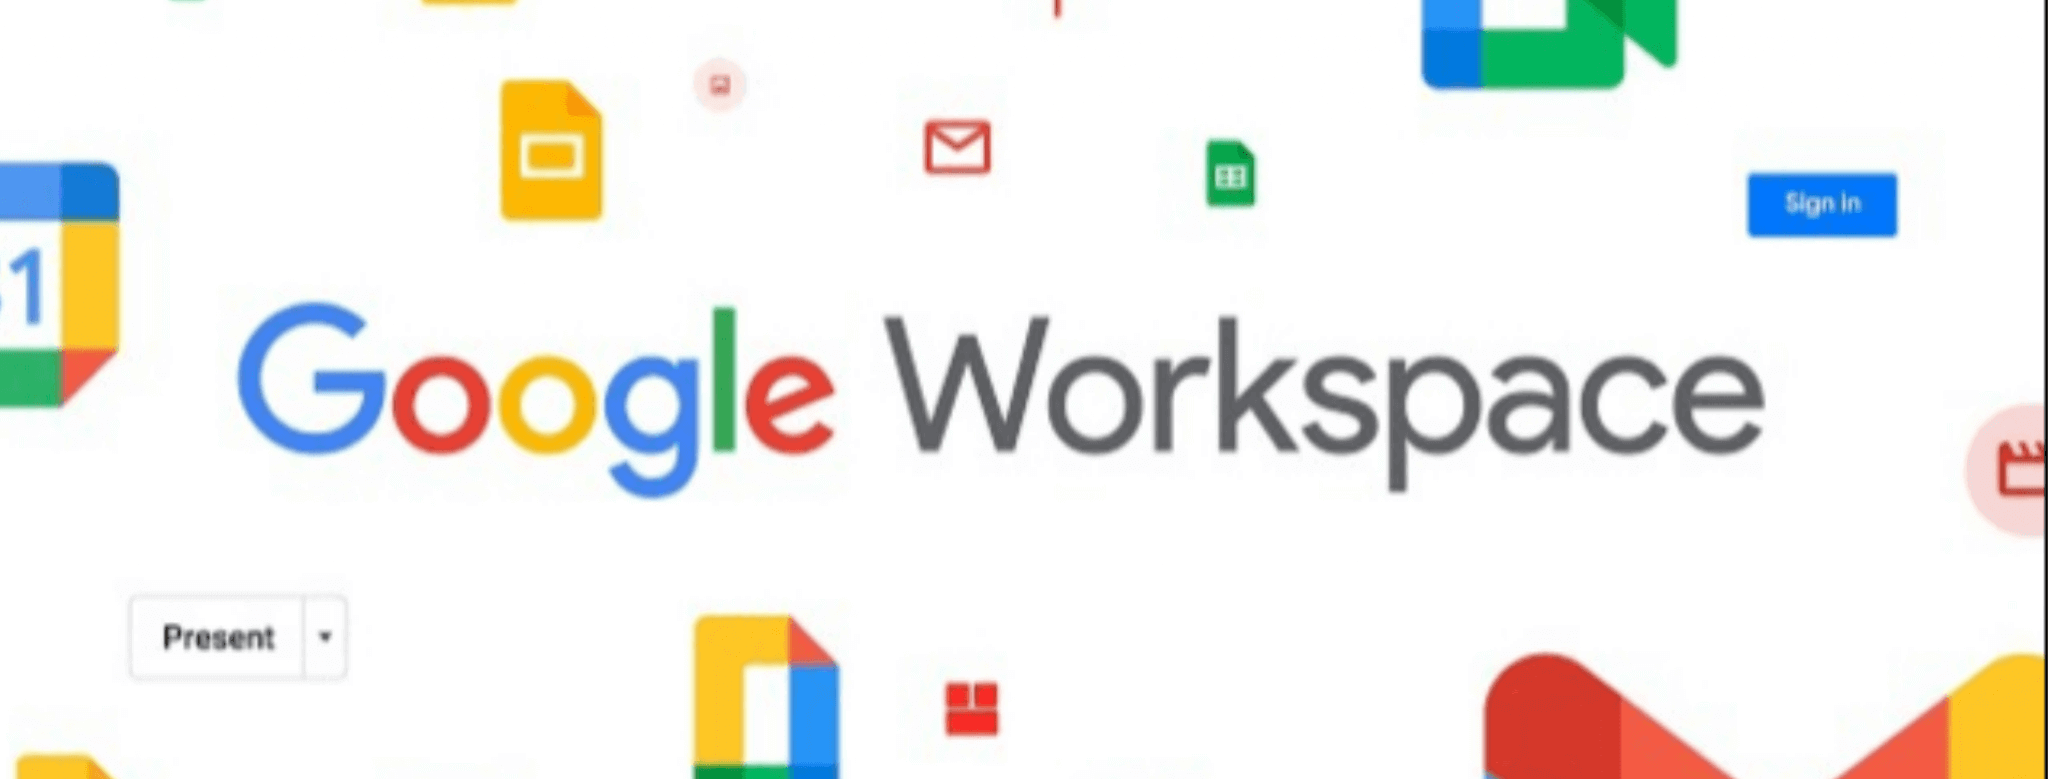 Everything About Google Workspace opengrowth